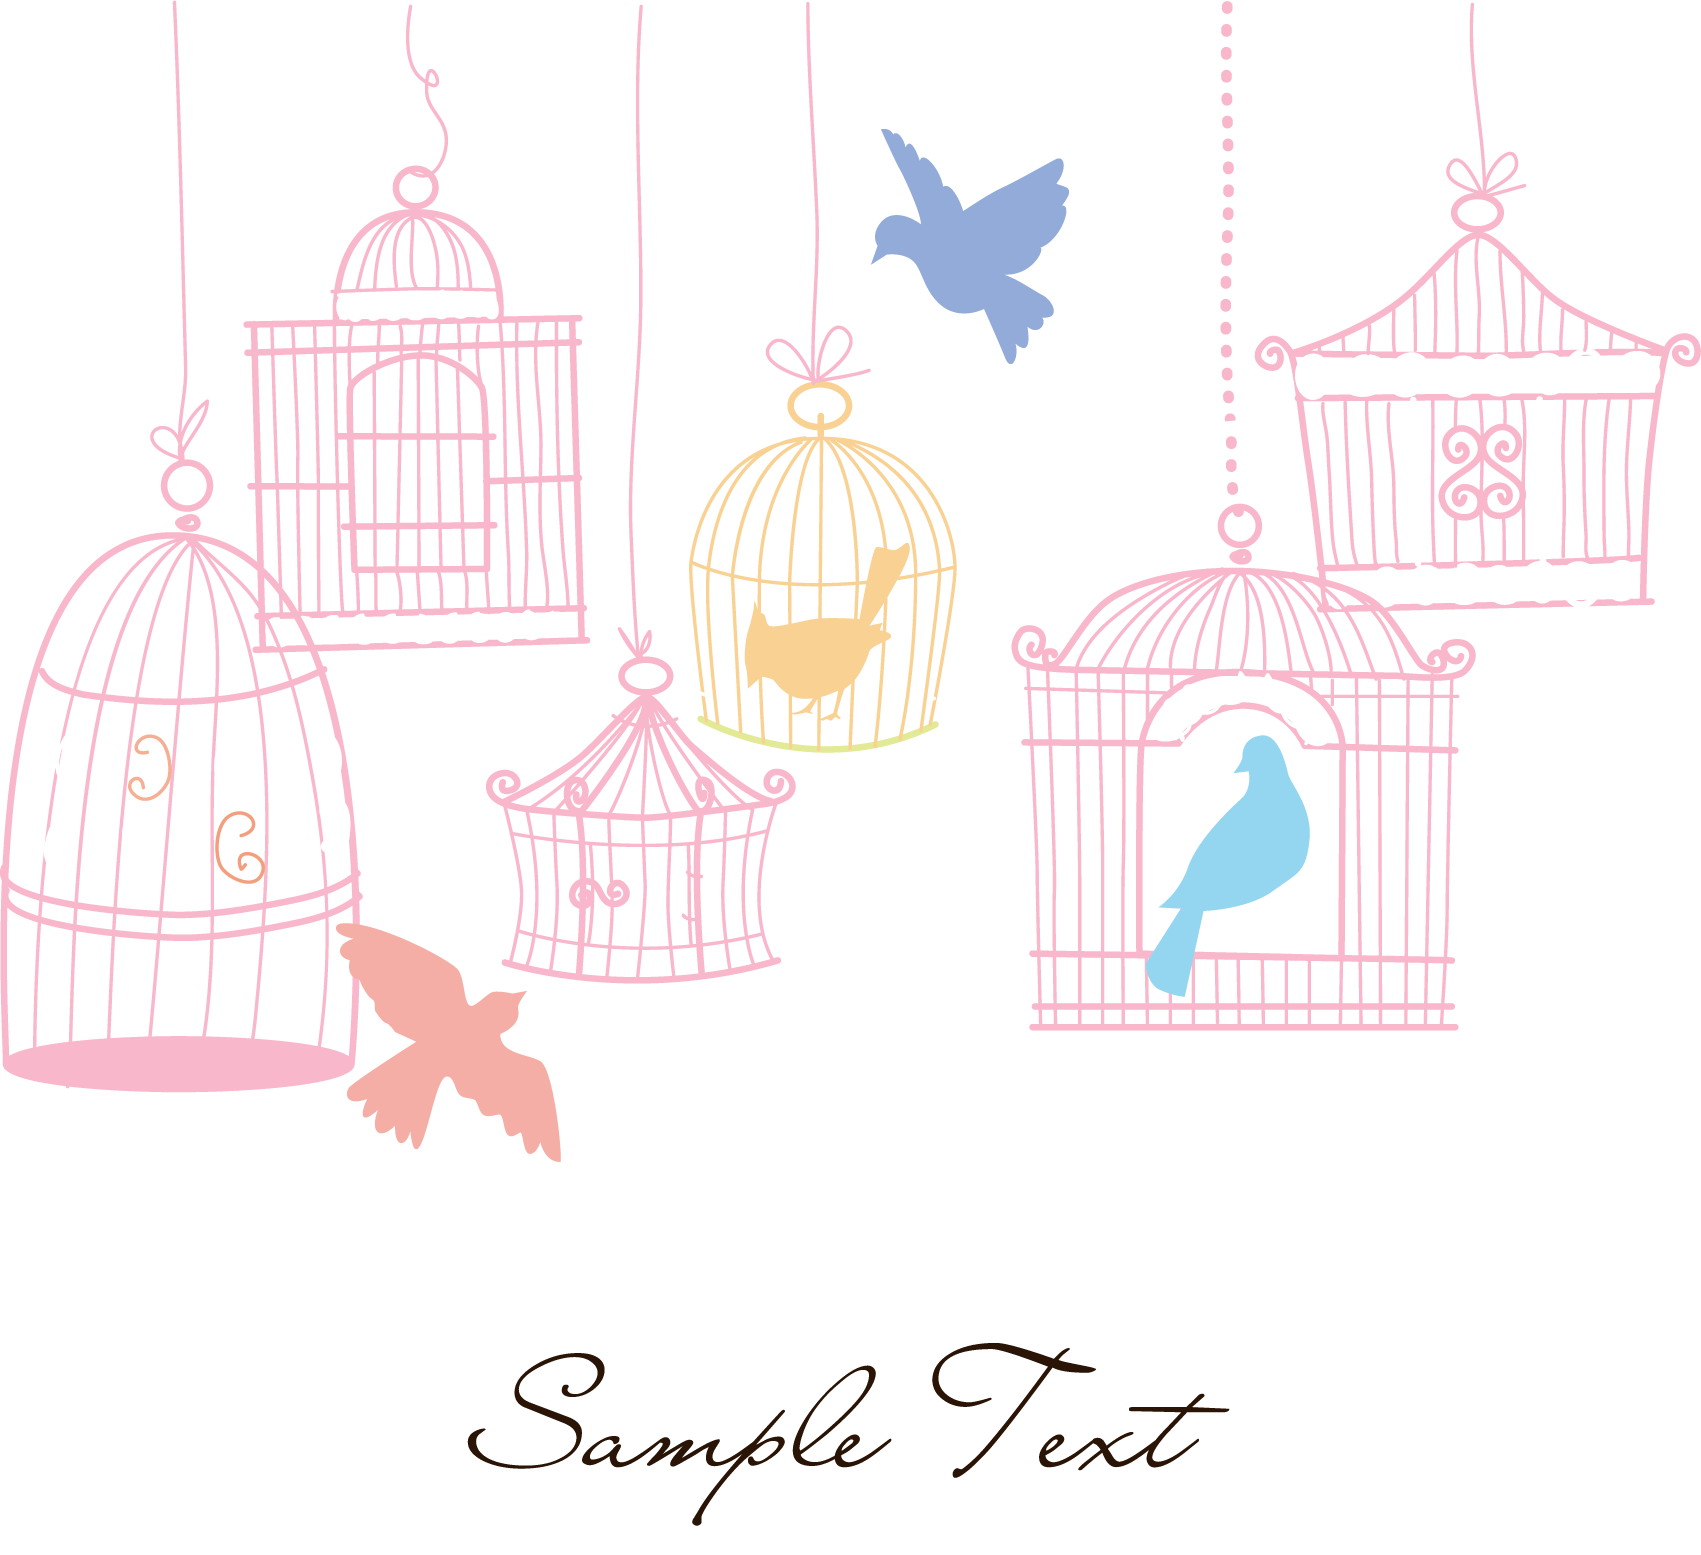 Pet clipart canary. Birdcage domestic small fresh